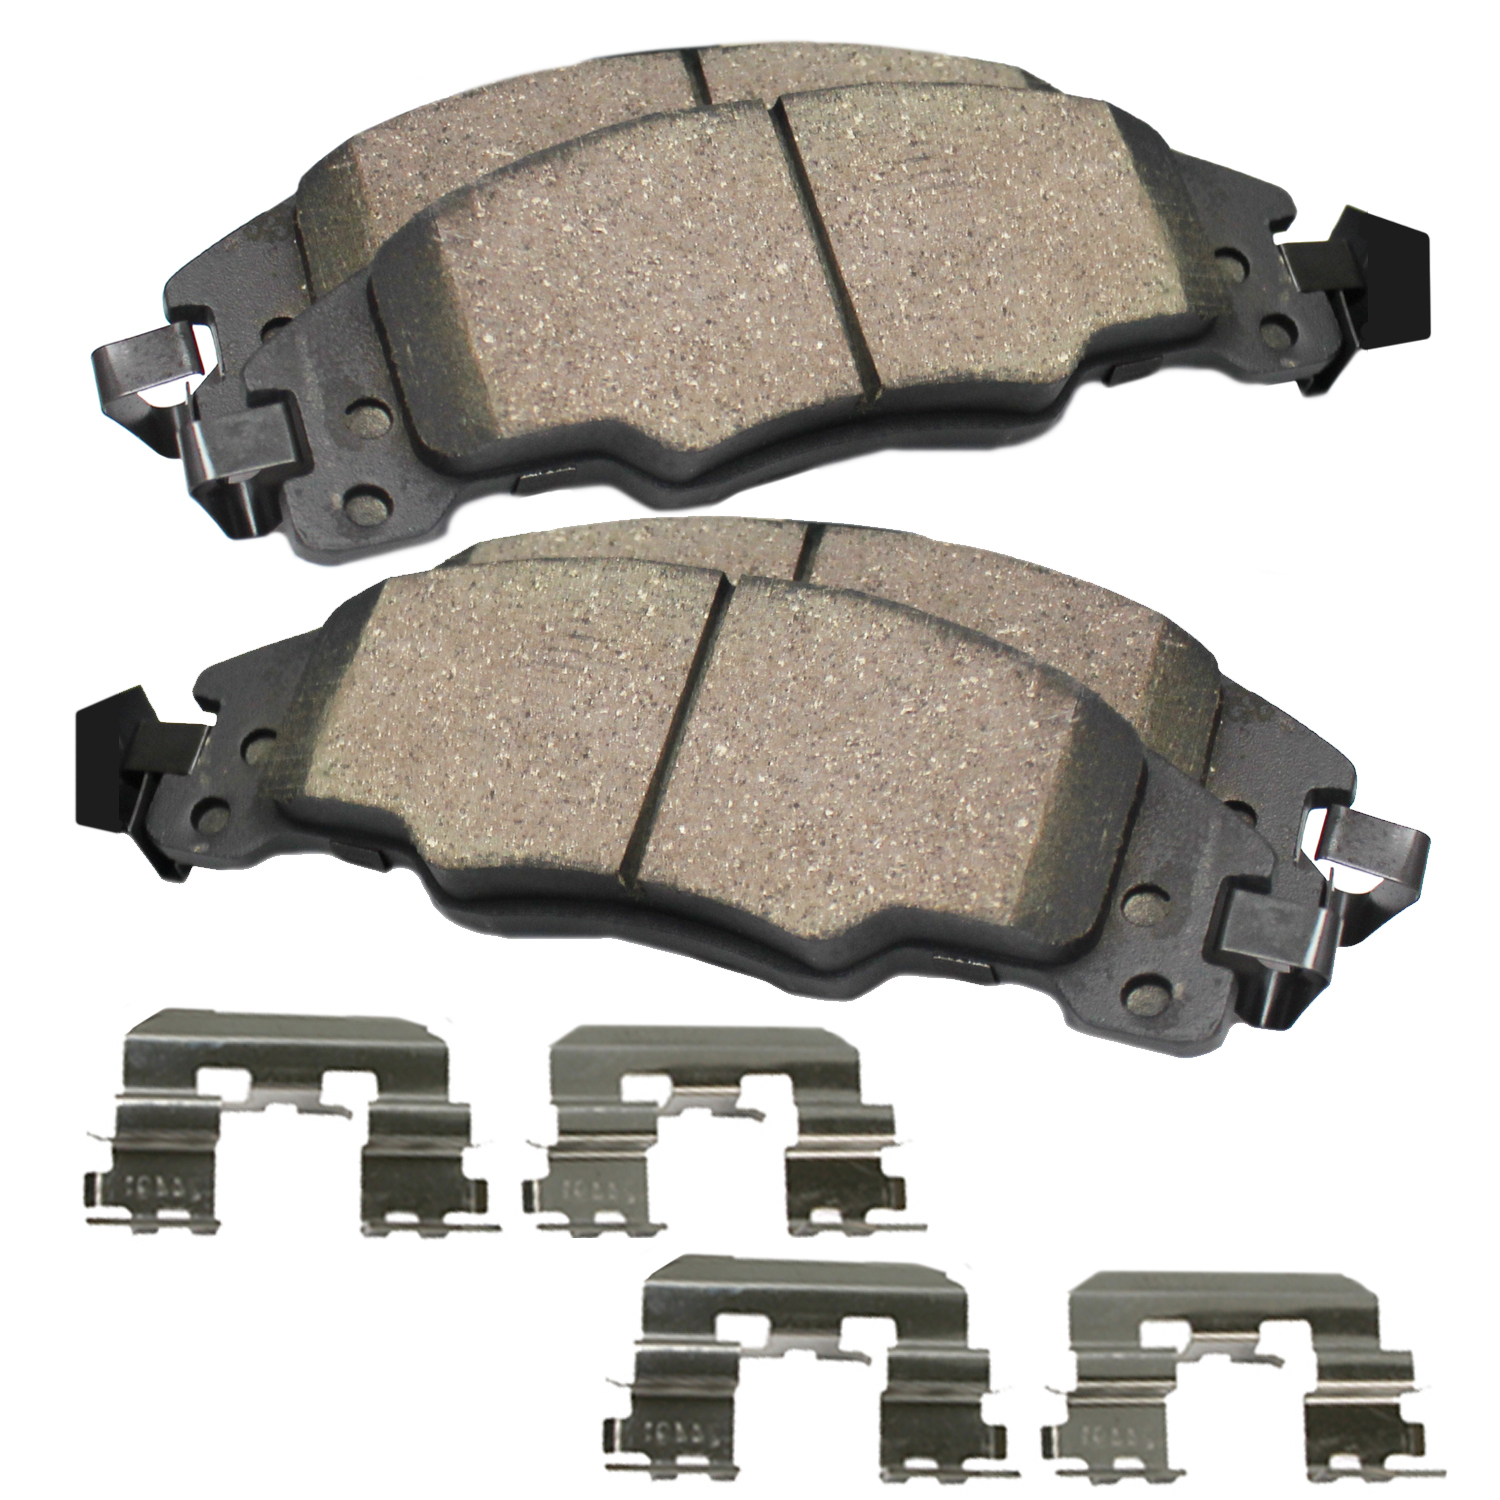 Rear Ceramic Brake Pads w/Hardware Kit for 1997-2013 Chevy Corvette - [2004-2009 Cadillac XLR]